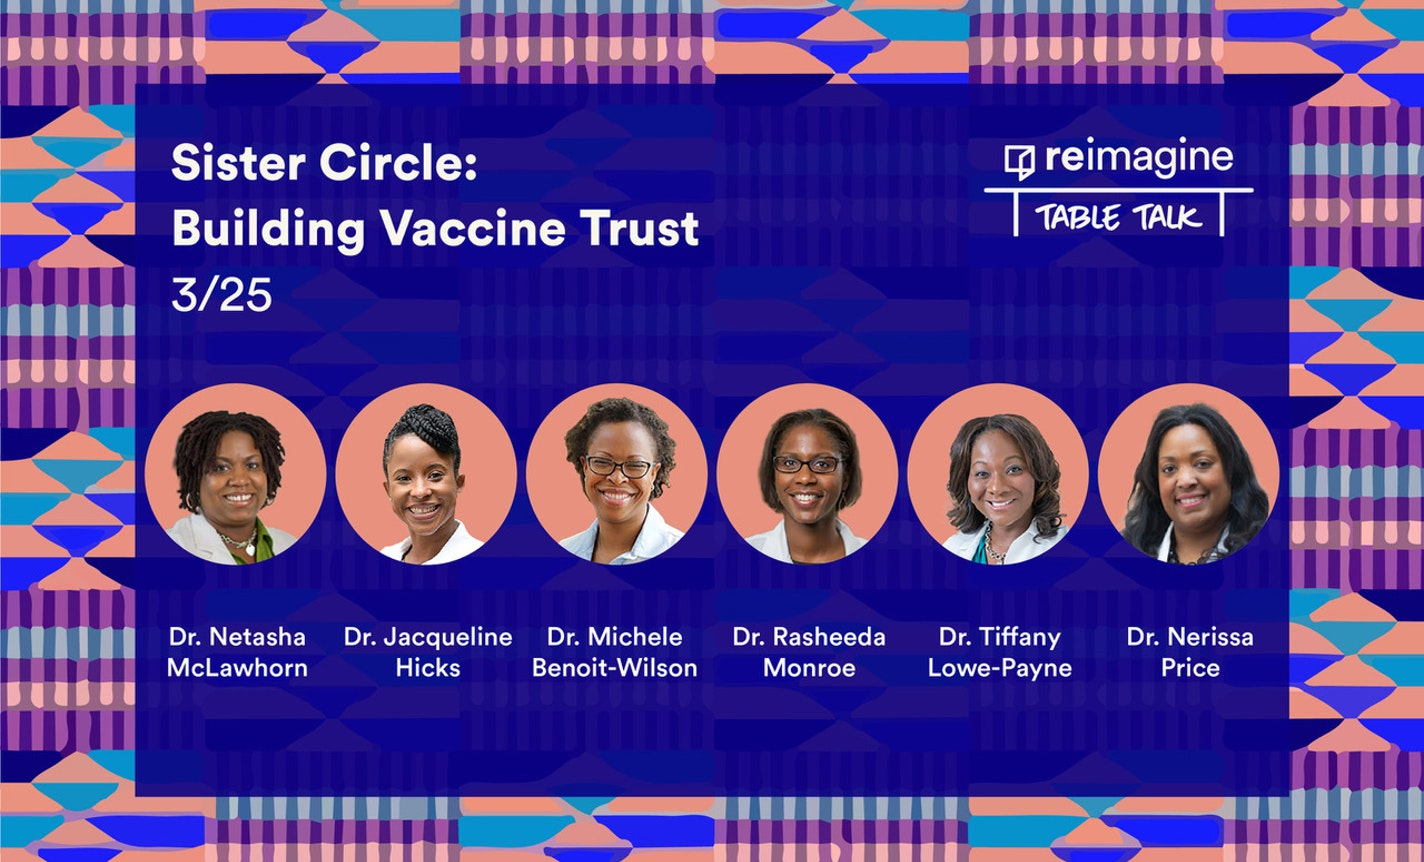 Sister Circle: A Model for Building COVID-19 Vaccine Trust